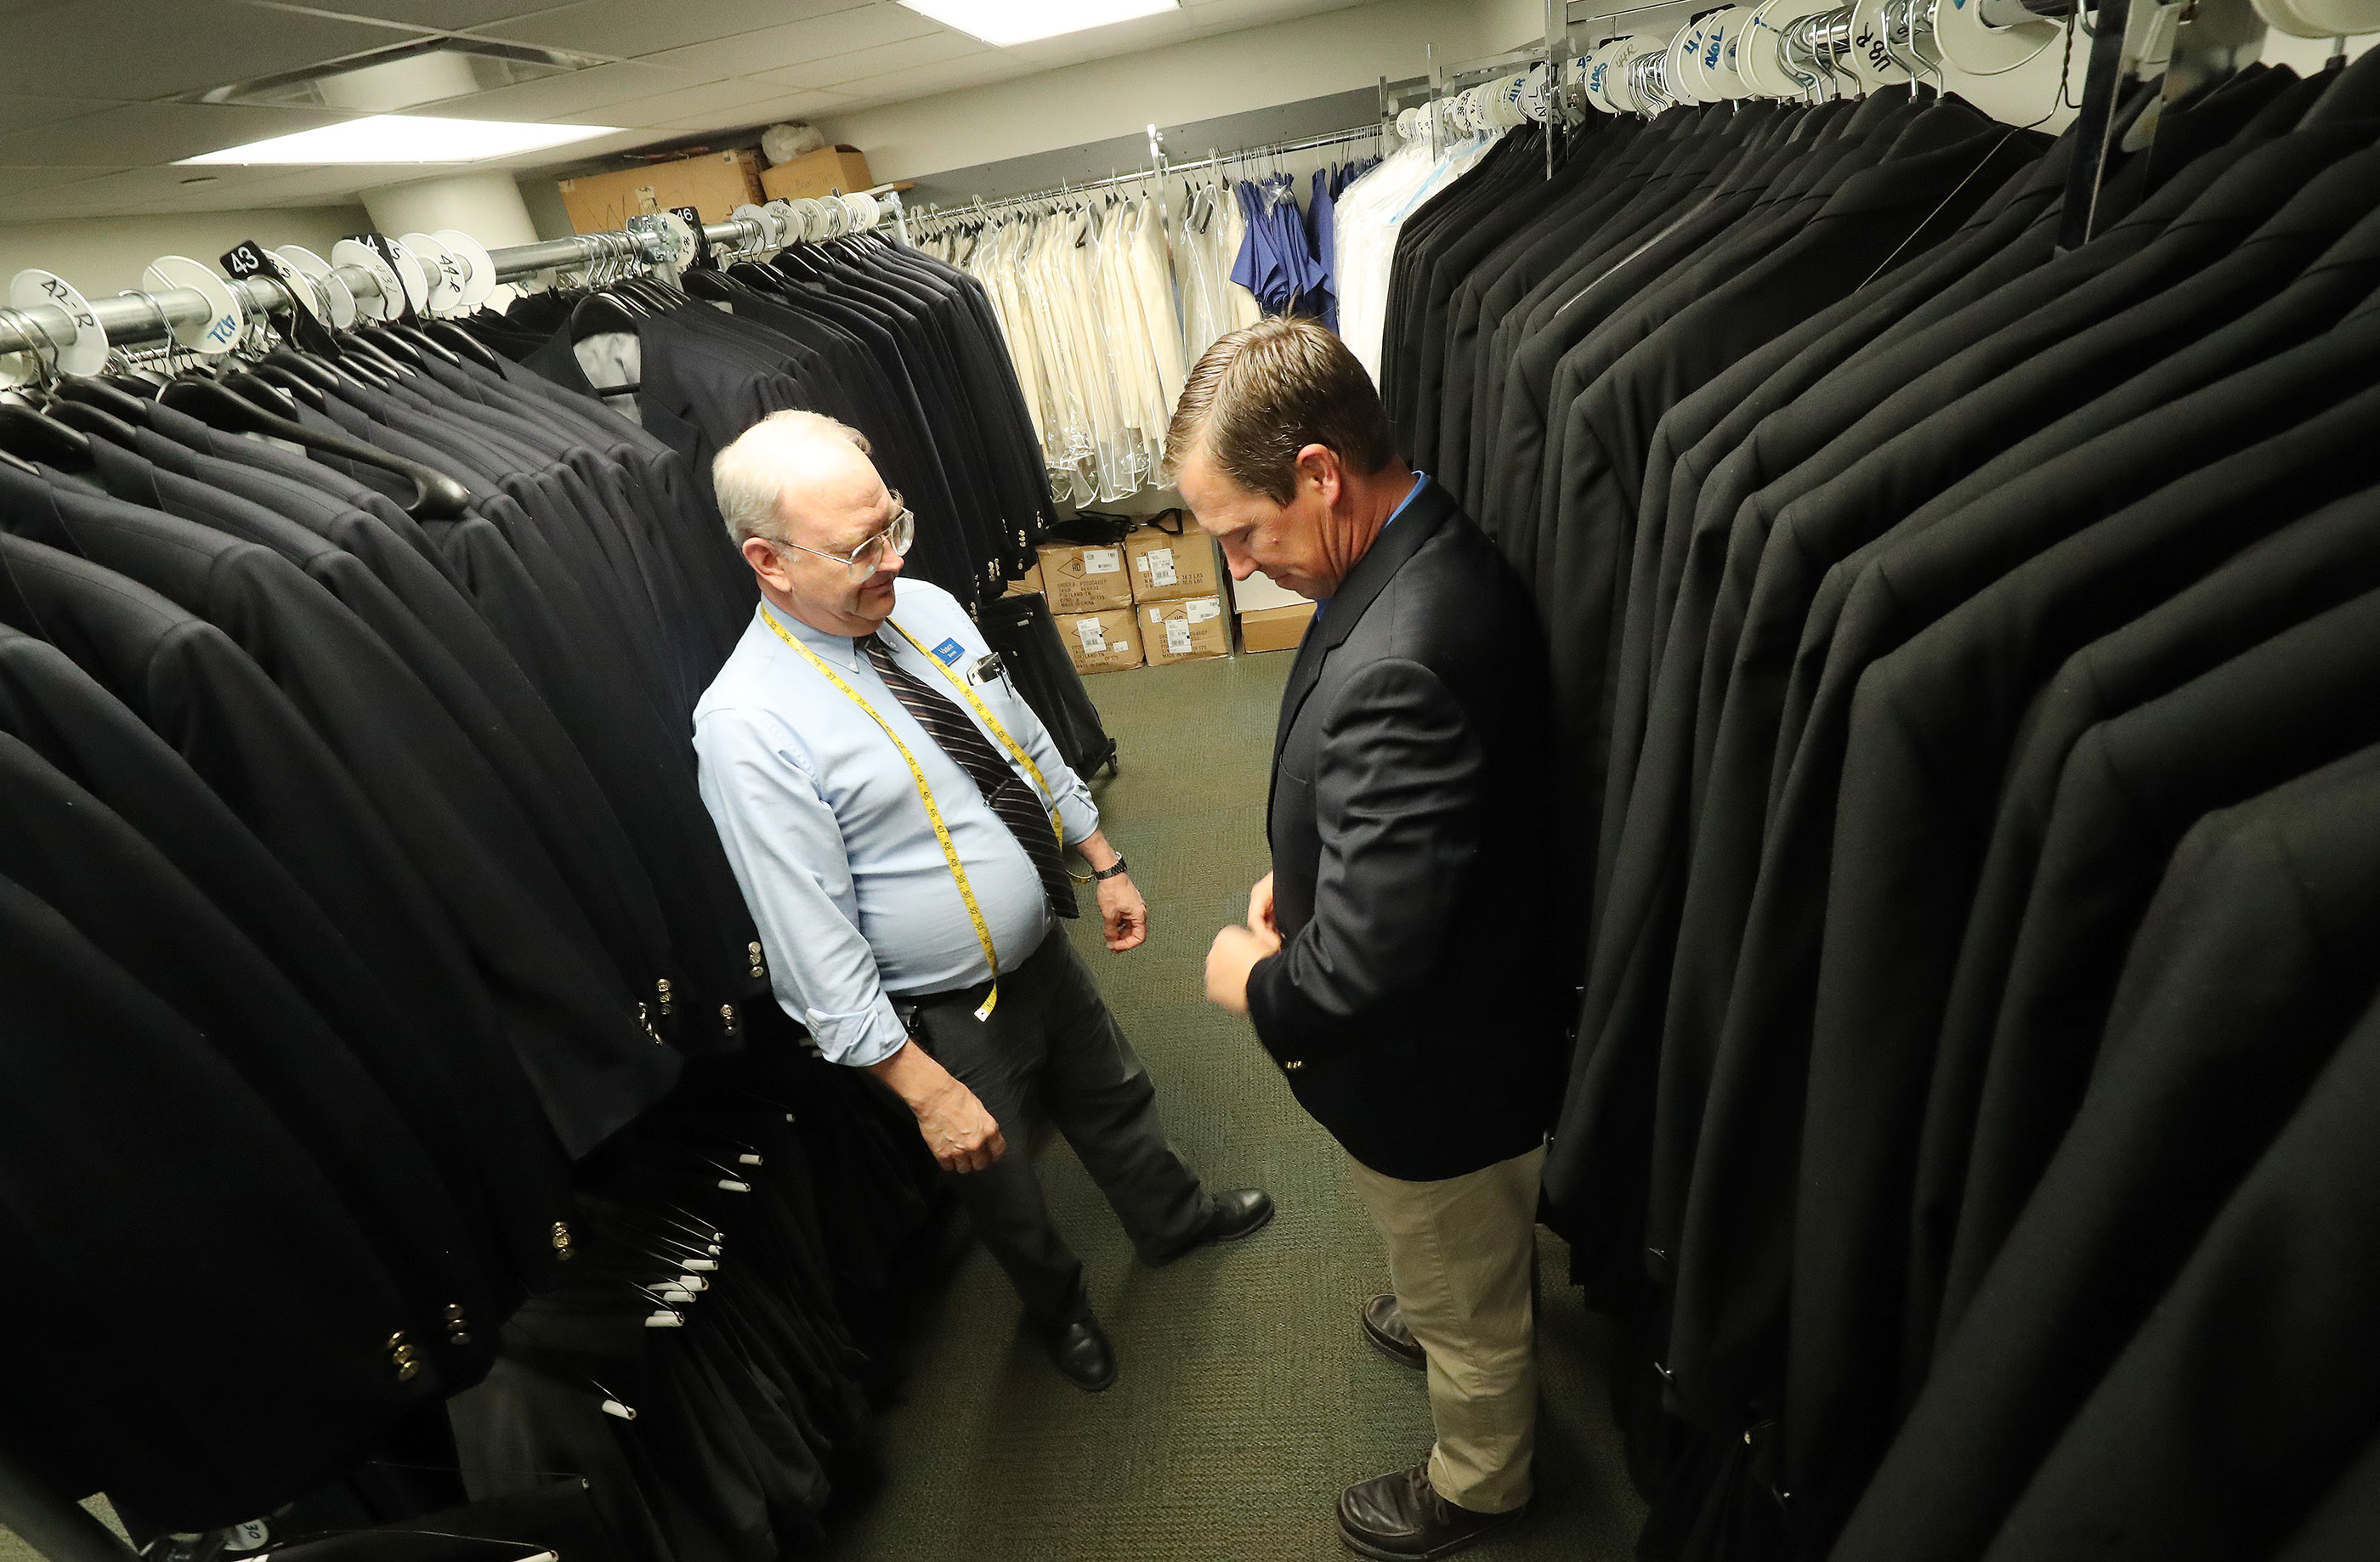 Daniel Wilson, right, gets fitted with a suit by Vance Everett in preparation to sing with The Tabernacle Choir at Temple Square during a rehearsal in Salt Lake City on Thursday, April 11, 2019. Four people were selected through social media to sing with the choir.